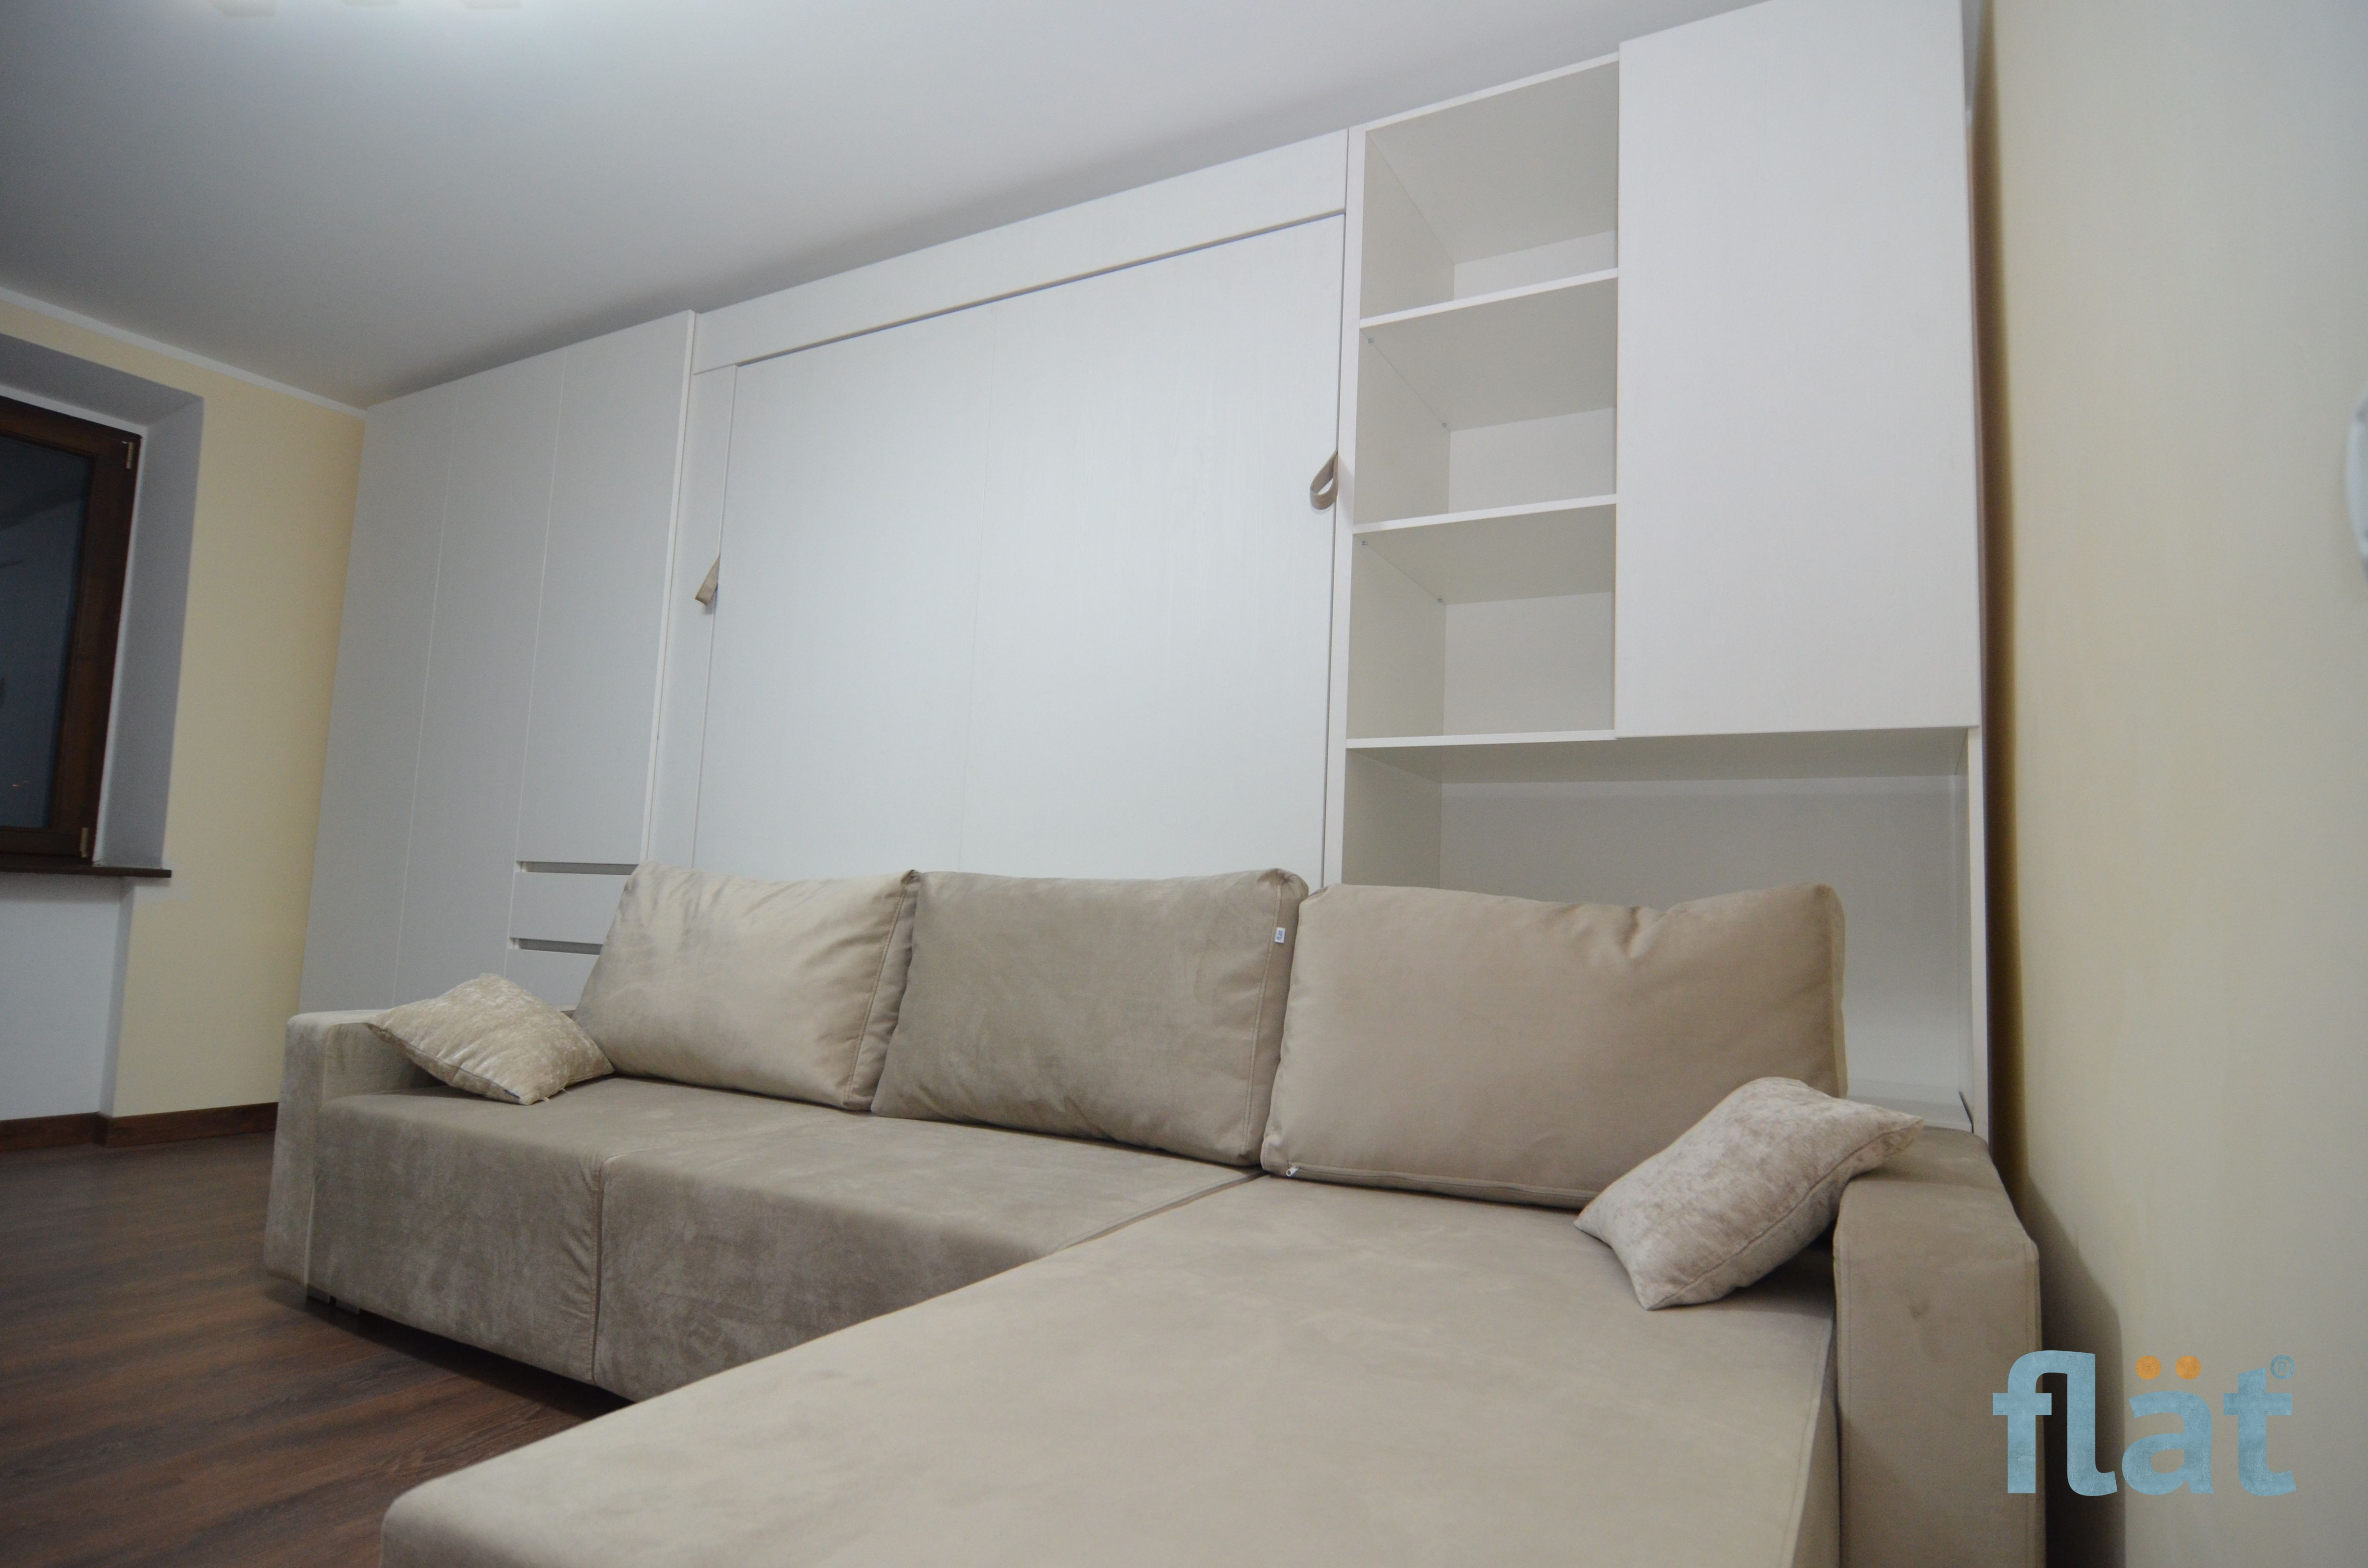 Queen size wall bed with storage and corner sofa. Стена